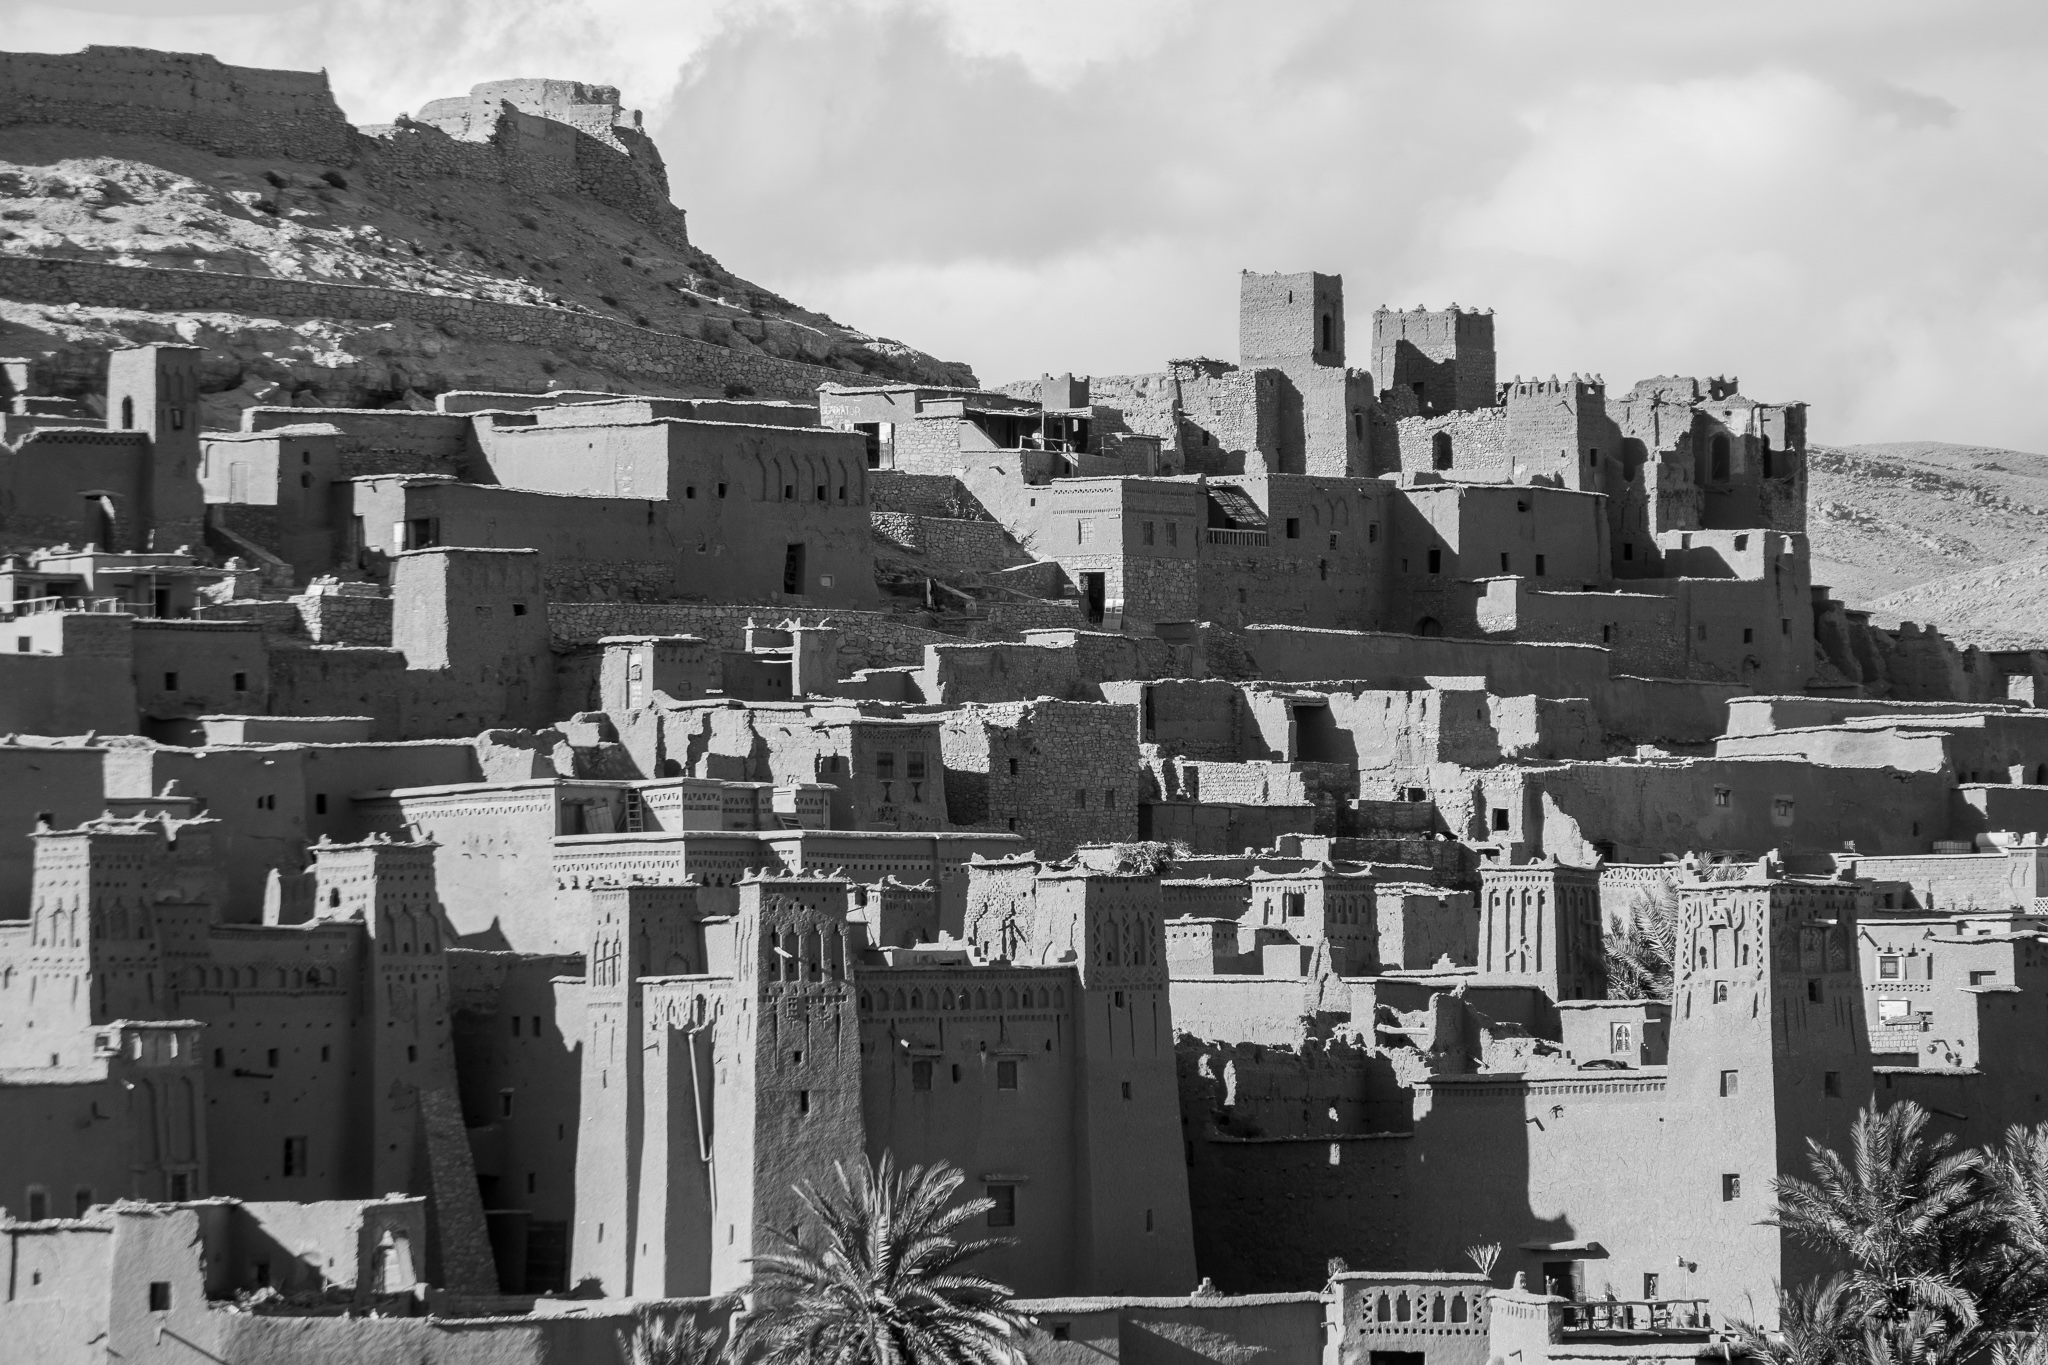 [Kasbah; Alcazaba, citadel.]<br>The Kasbah or Ksar of Ait Ben Haddou is a fortified city in the province of Ouarzazate.<br> It is a spectacular village, of Berber origin, built with clay, stone, and straw, and is one of the best preserved Kasbahs in whole Morocco.